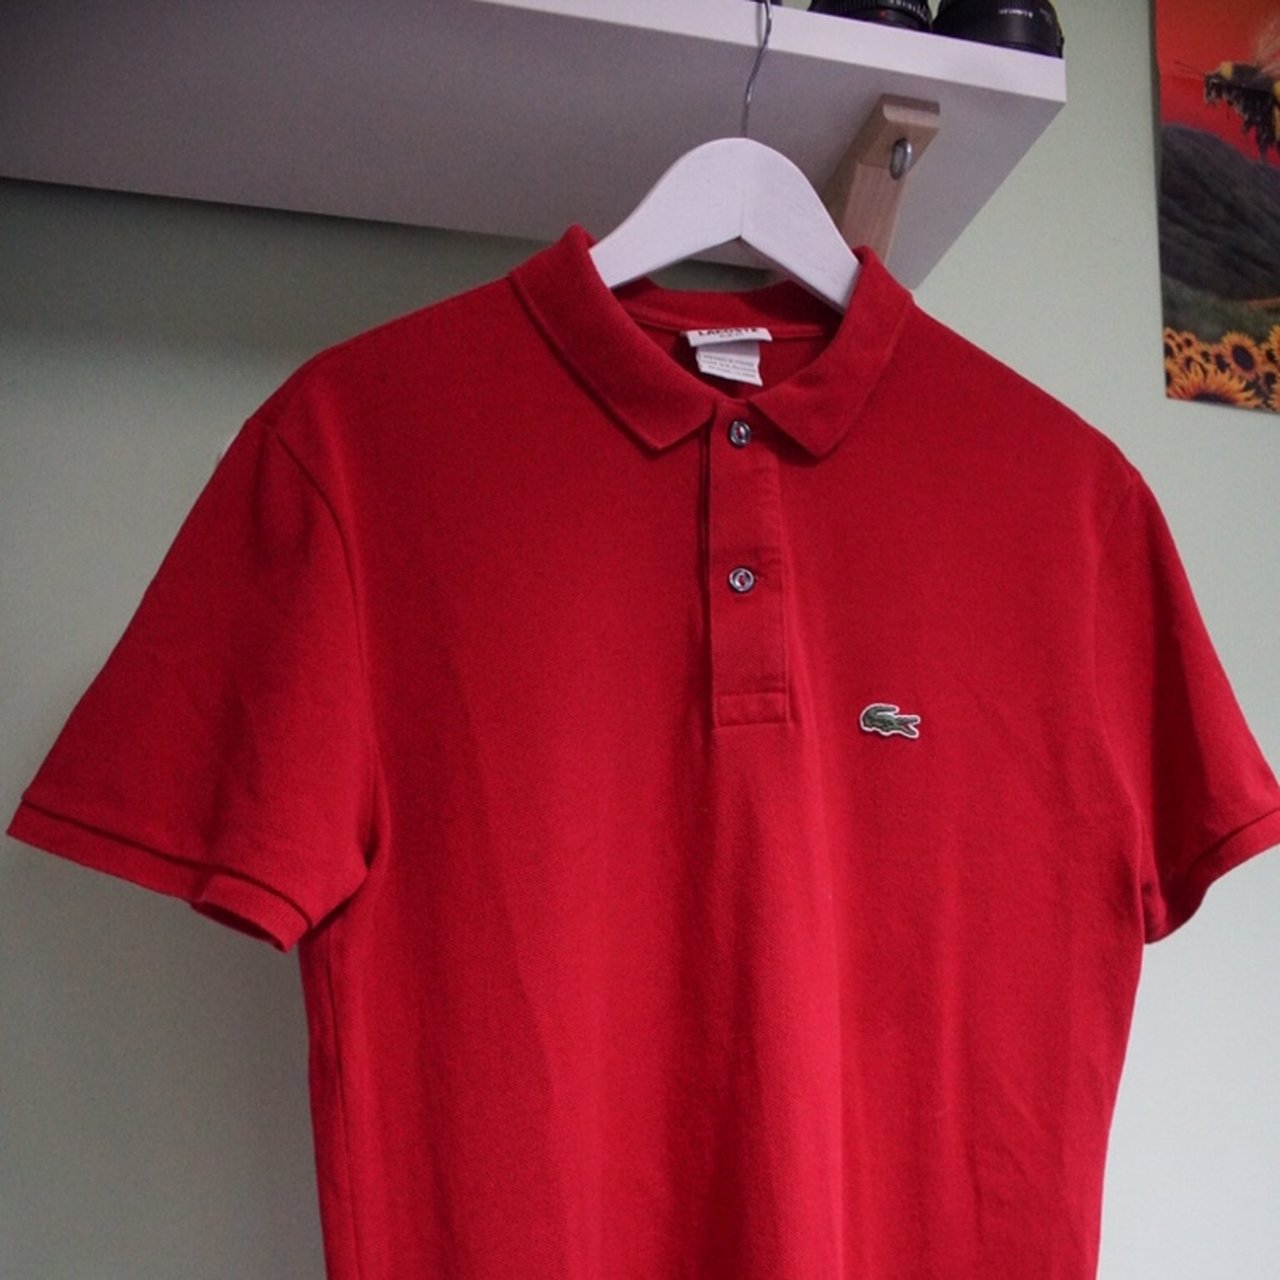 Lacoste Red Polo Shirt Size S 910 Condition Buy Off Depop